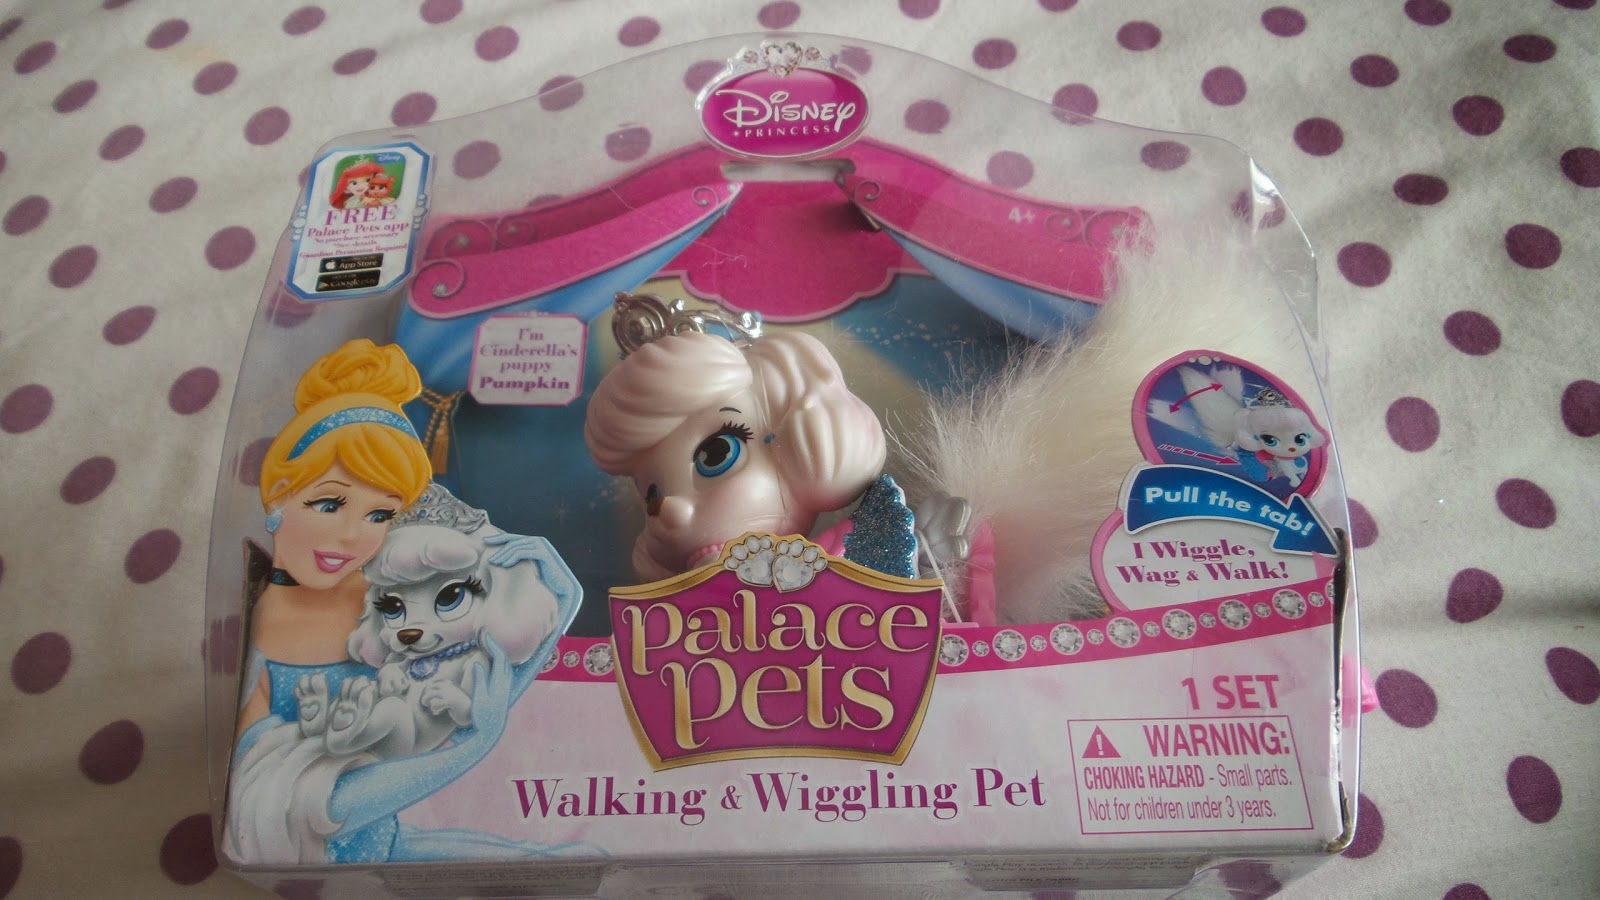 Enter The Magical Realm Of Palace Pets A World Lovable Animals Who Adore Spending Time With Their Favourite Disney Princesses These Sweet Are